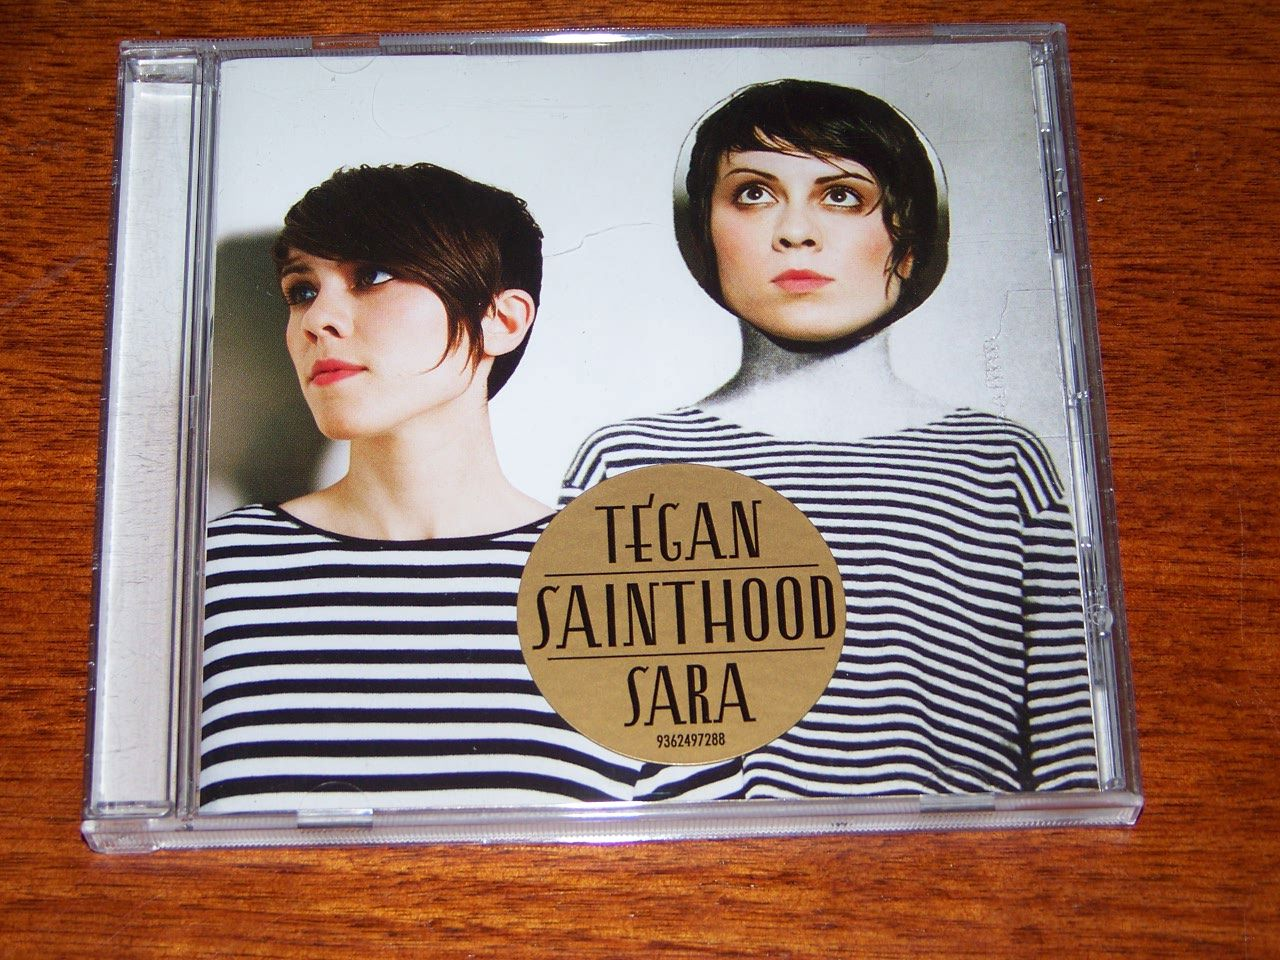 Sainthood-Tegan-and-Sarah-Near-NEW-2009-CD